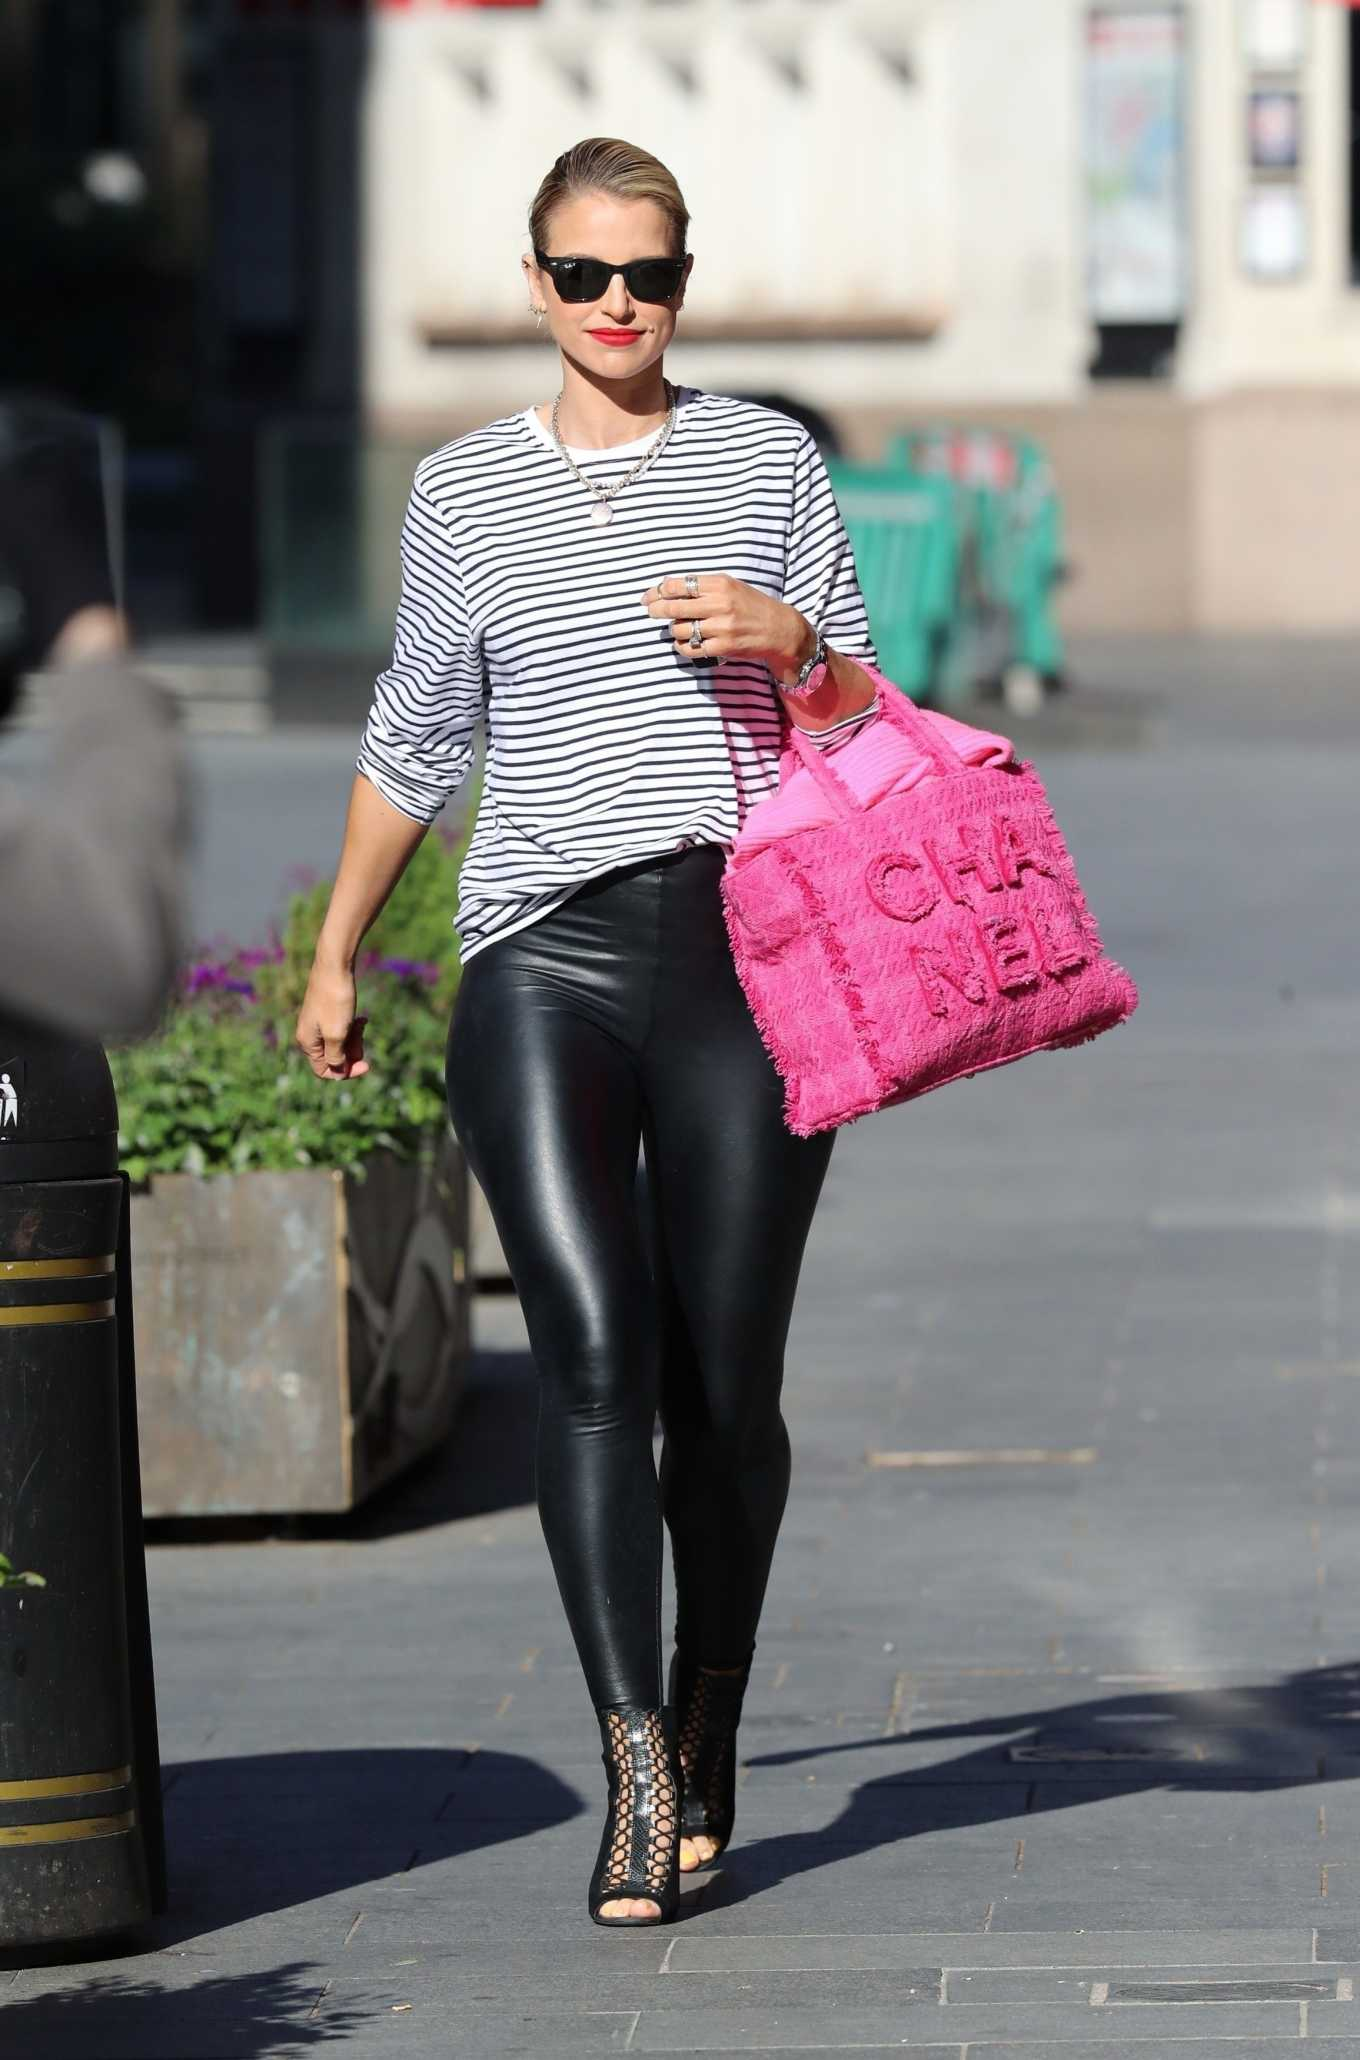 Vogue Williams in PVC Leggings and stripes exits Heart Radio show in London